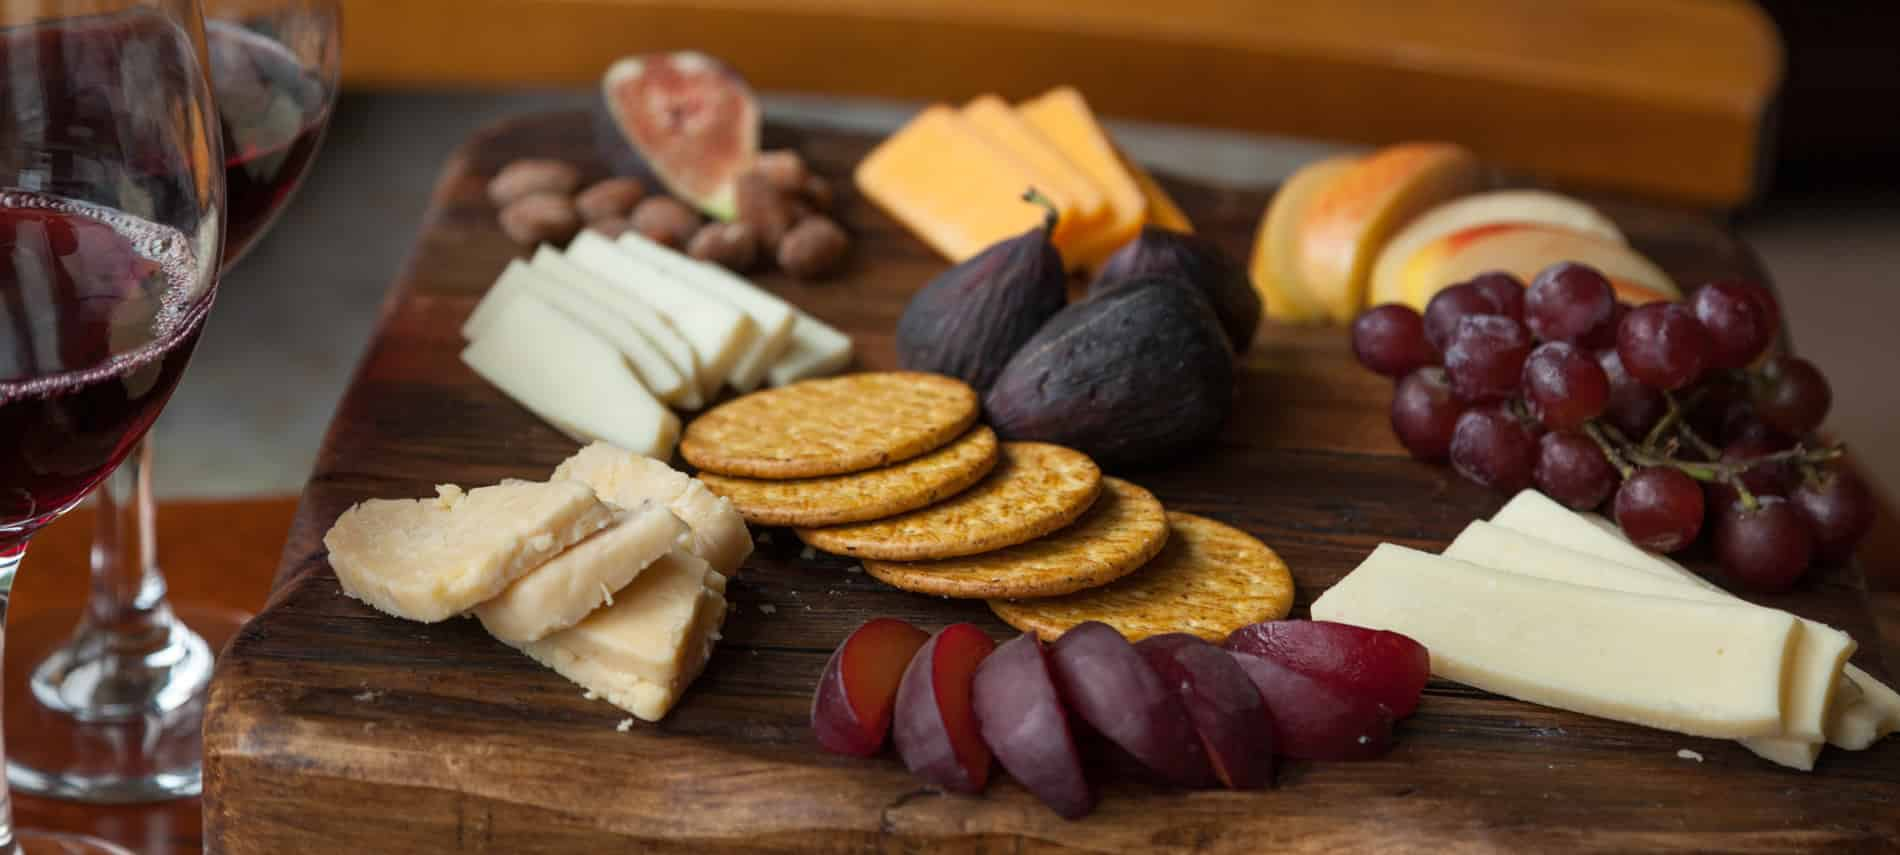 cutting board with Grapes, Dates, Crackers, Yellow cheese, White cheese and two glasses of red wine